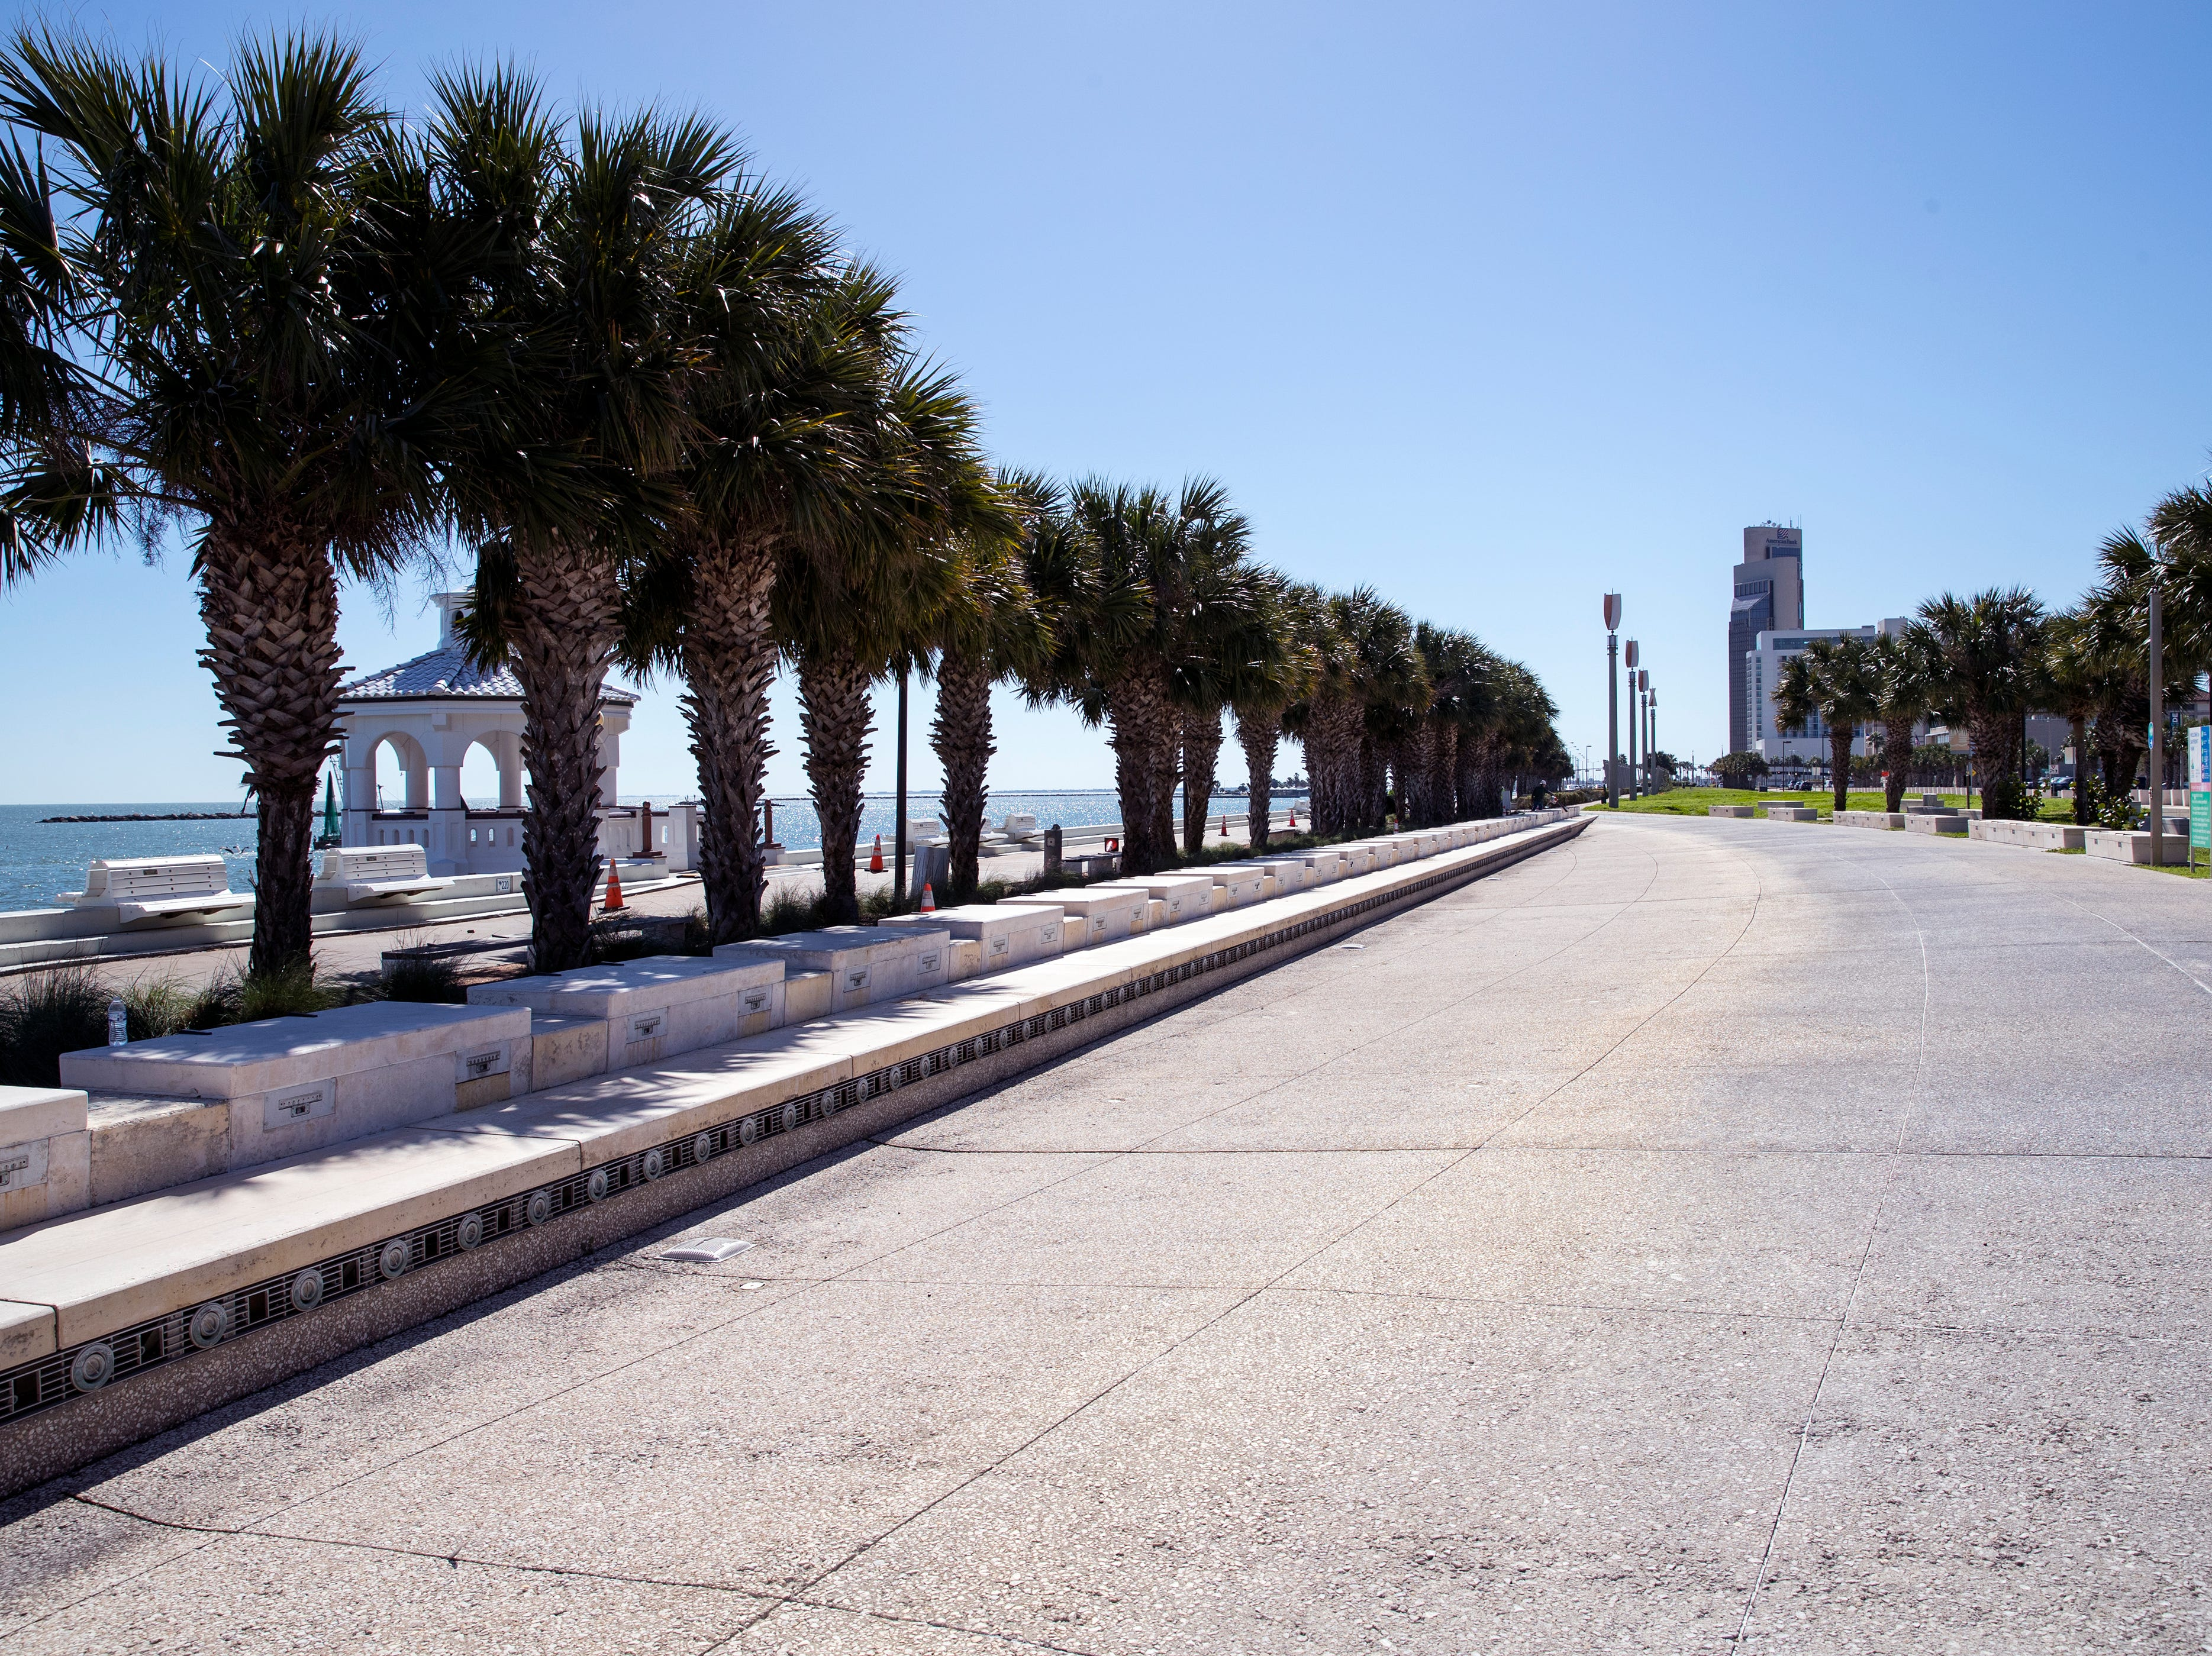 Corpus Christi officials are trying to figure out how to pay for repairs to the Bayfront Park Fountain in the downtown area. The fountain and its wind turbines are currently inoperable.